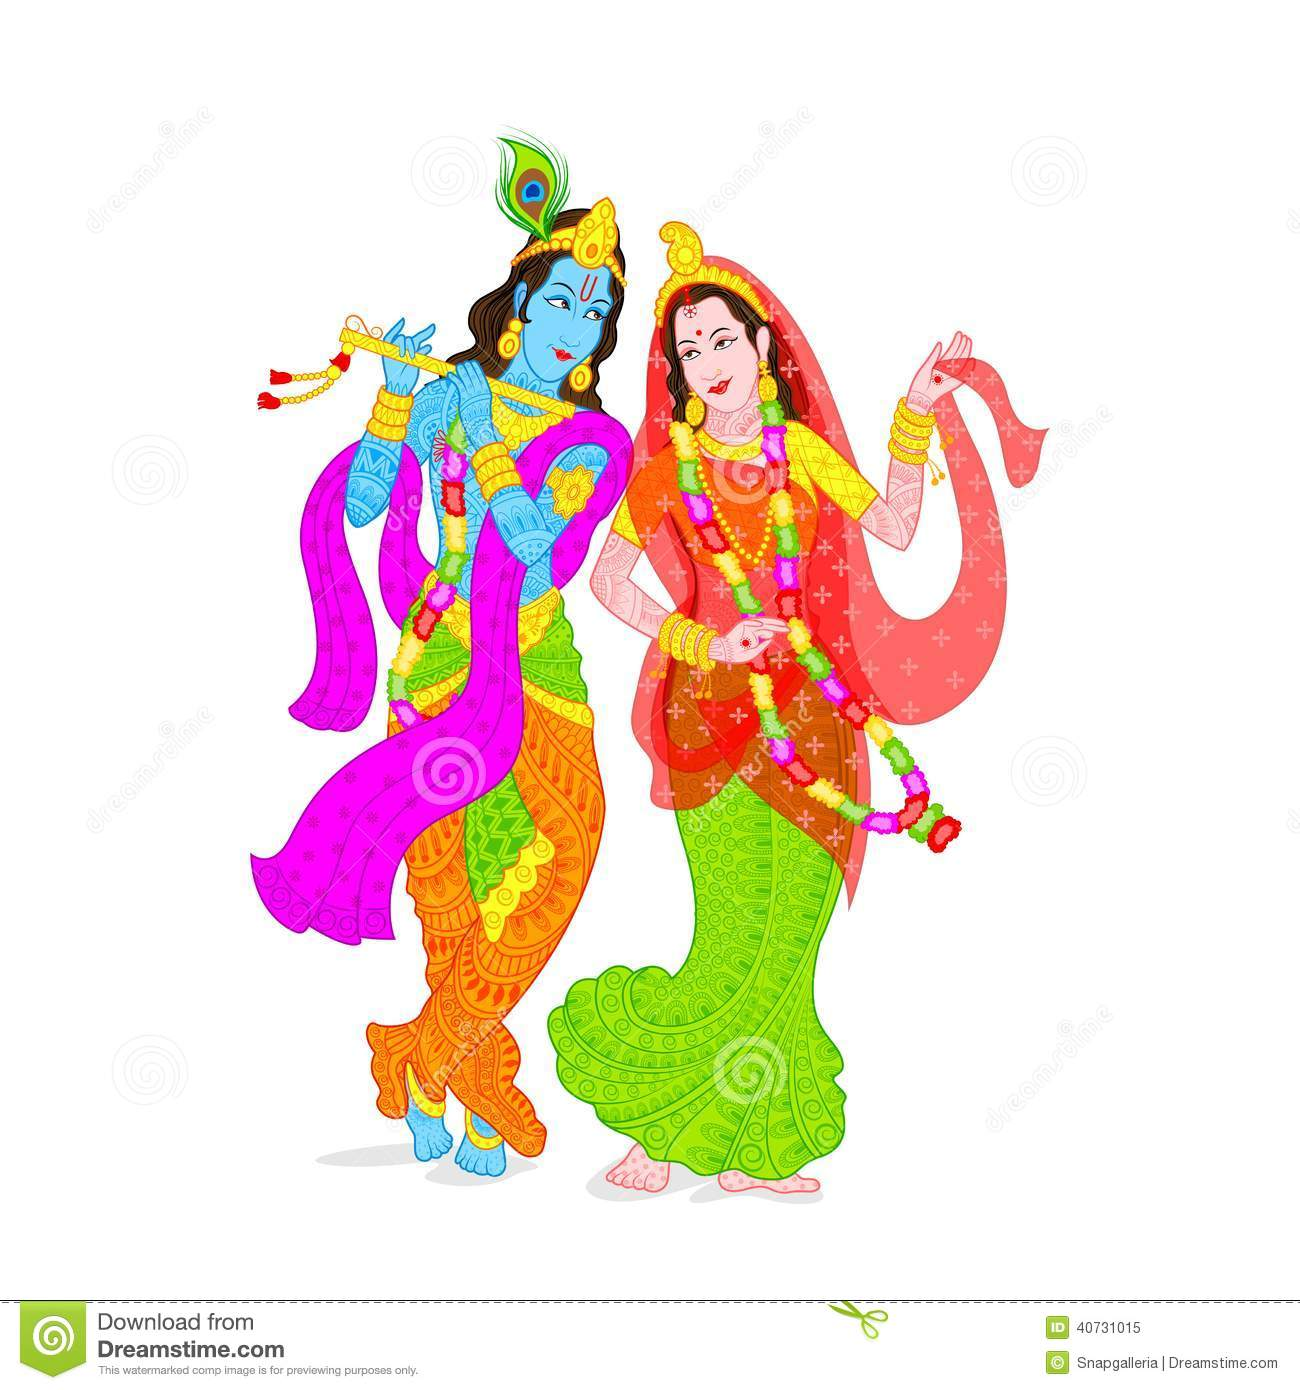 Latest Radha Krishna Wall Decor Decal Art Photo Gallery for free download